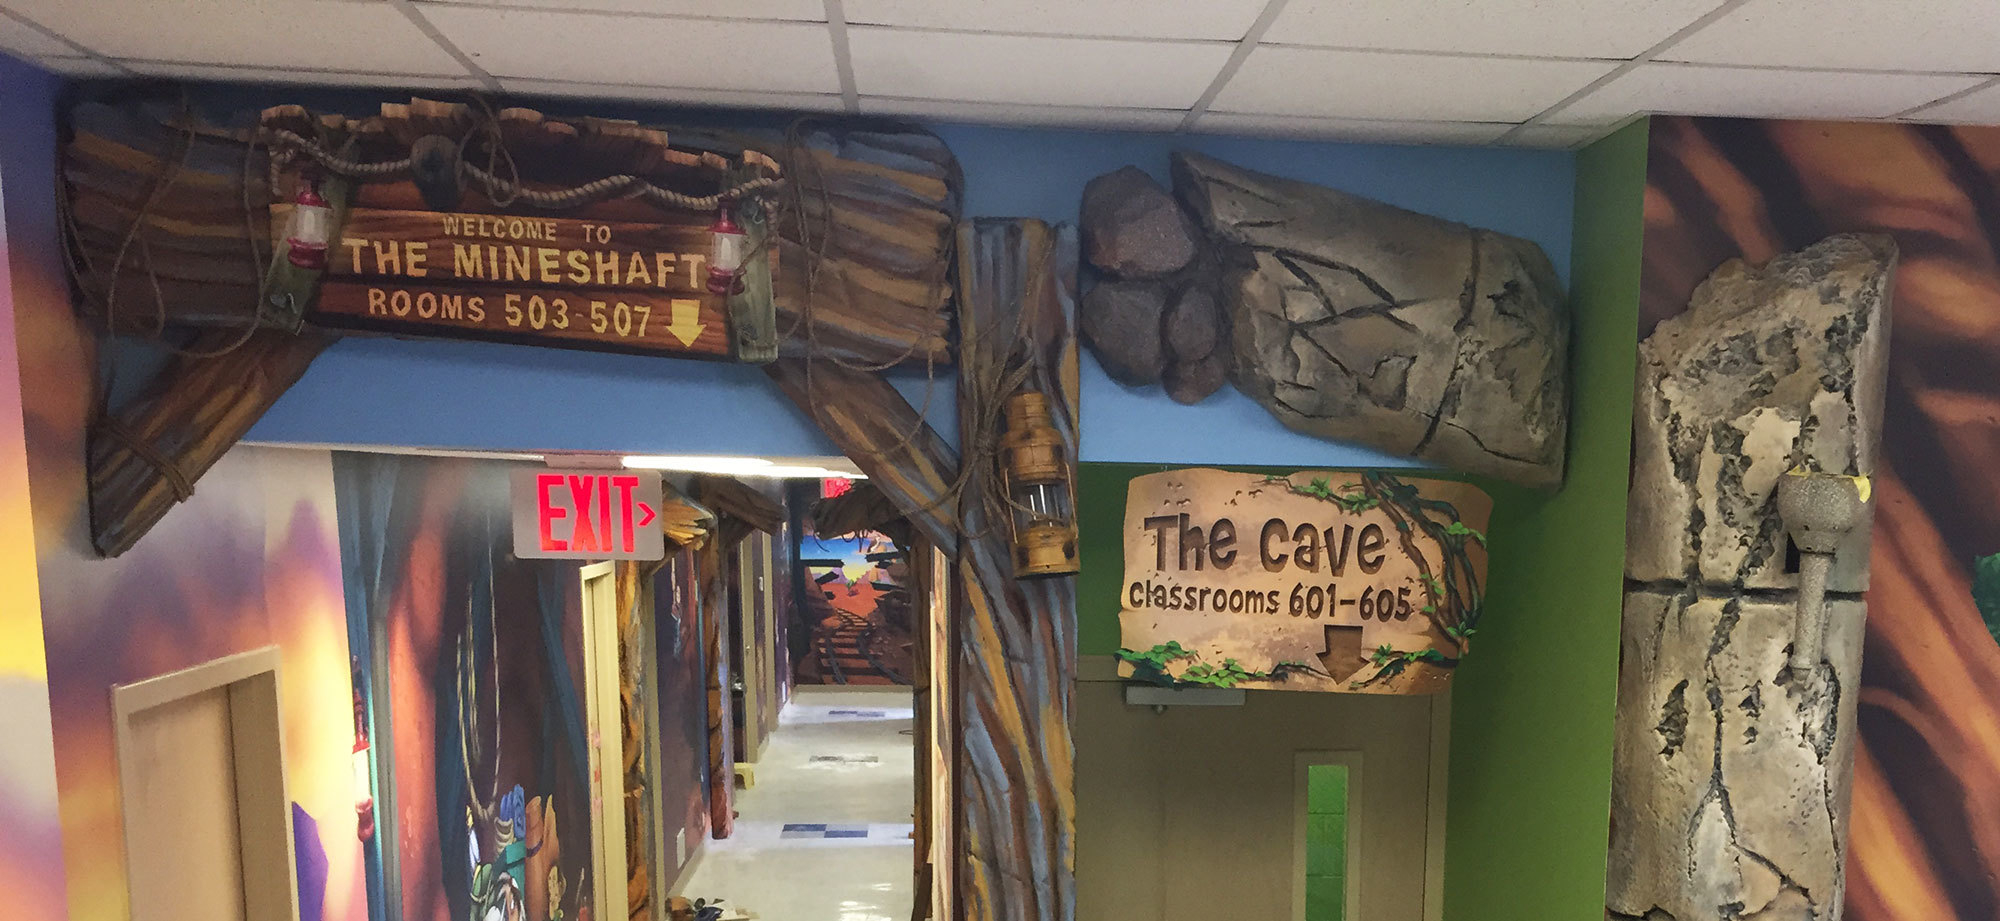 Examples of Mineshaft and Cave Themed Signs at a Church